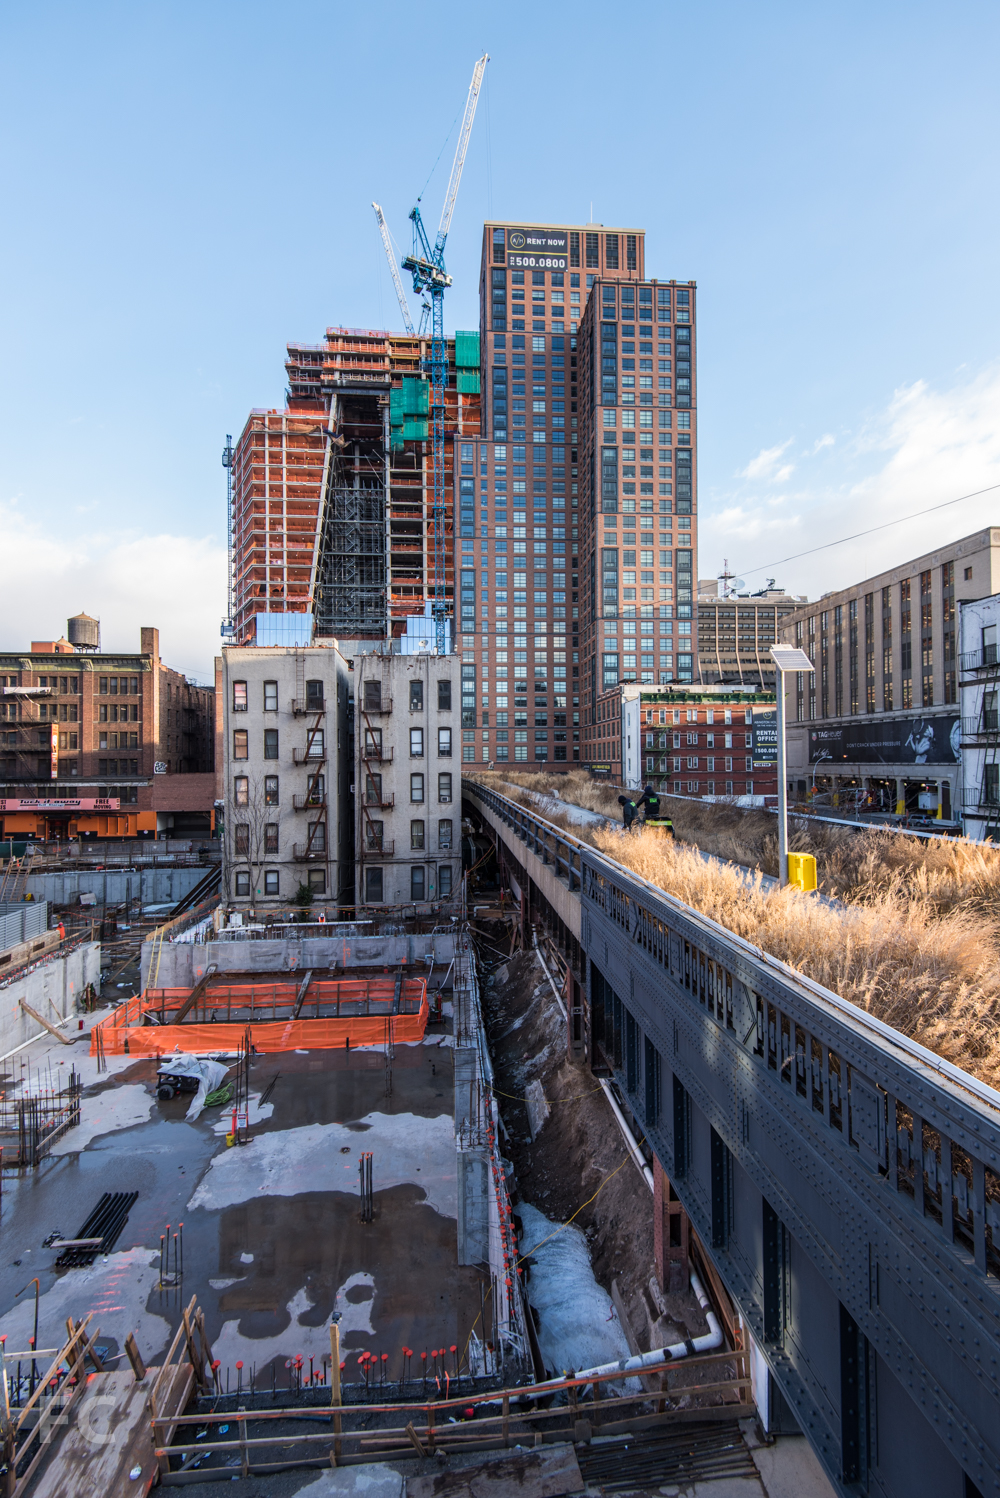 Looking north along the High Line.